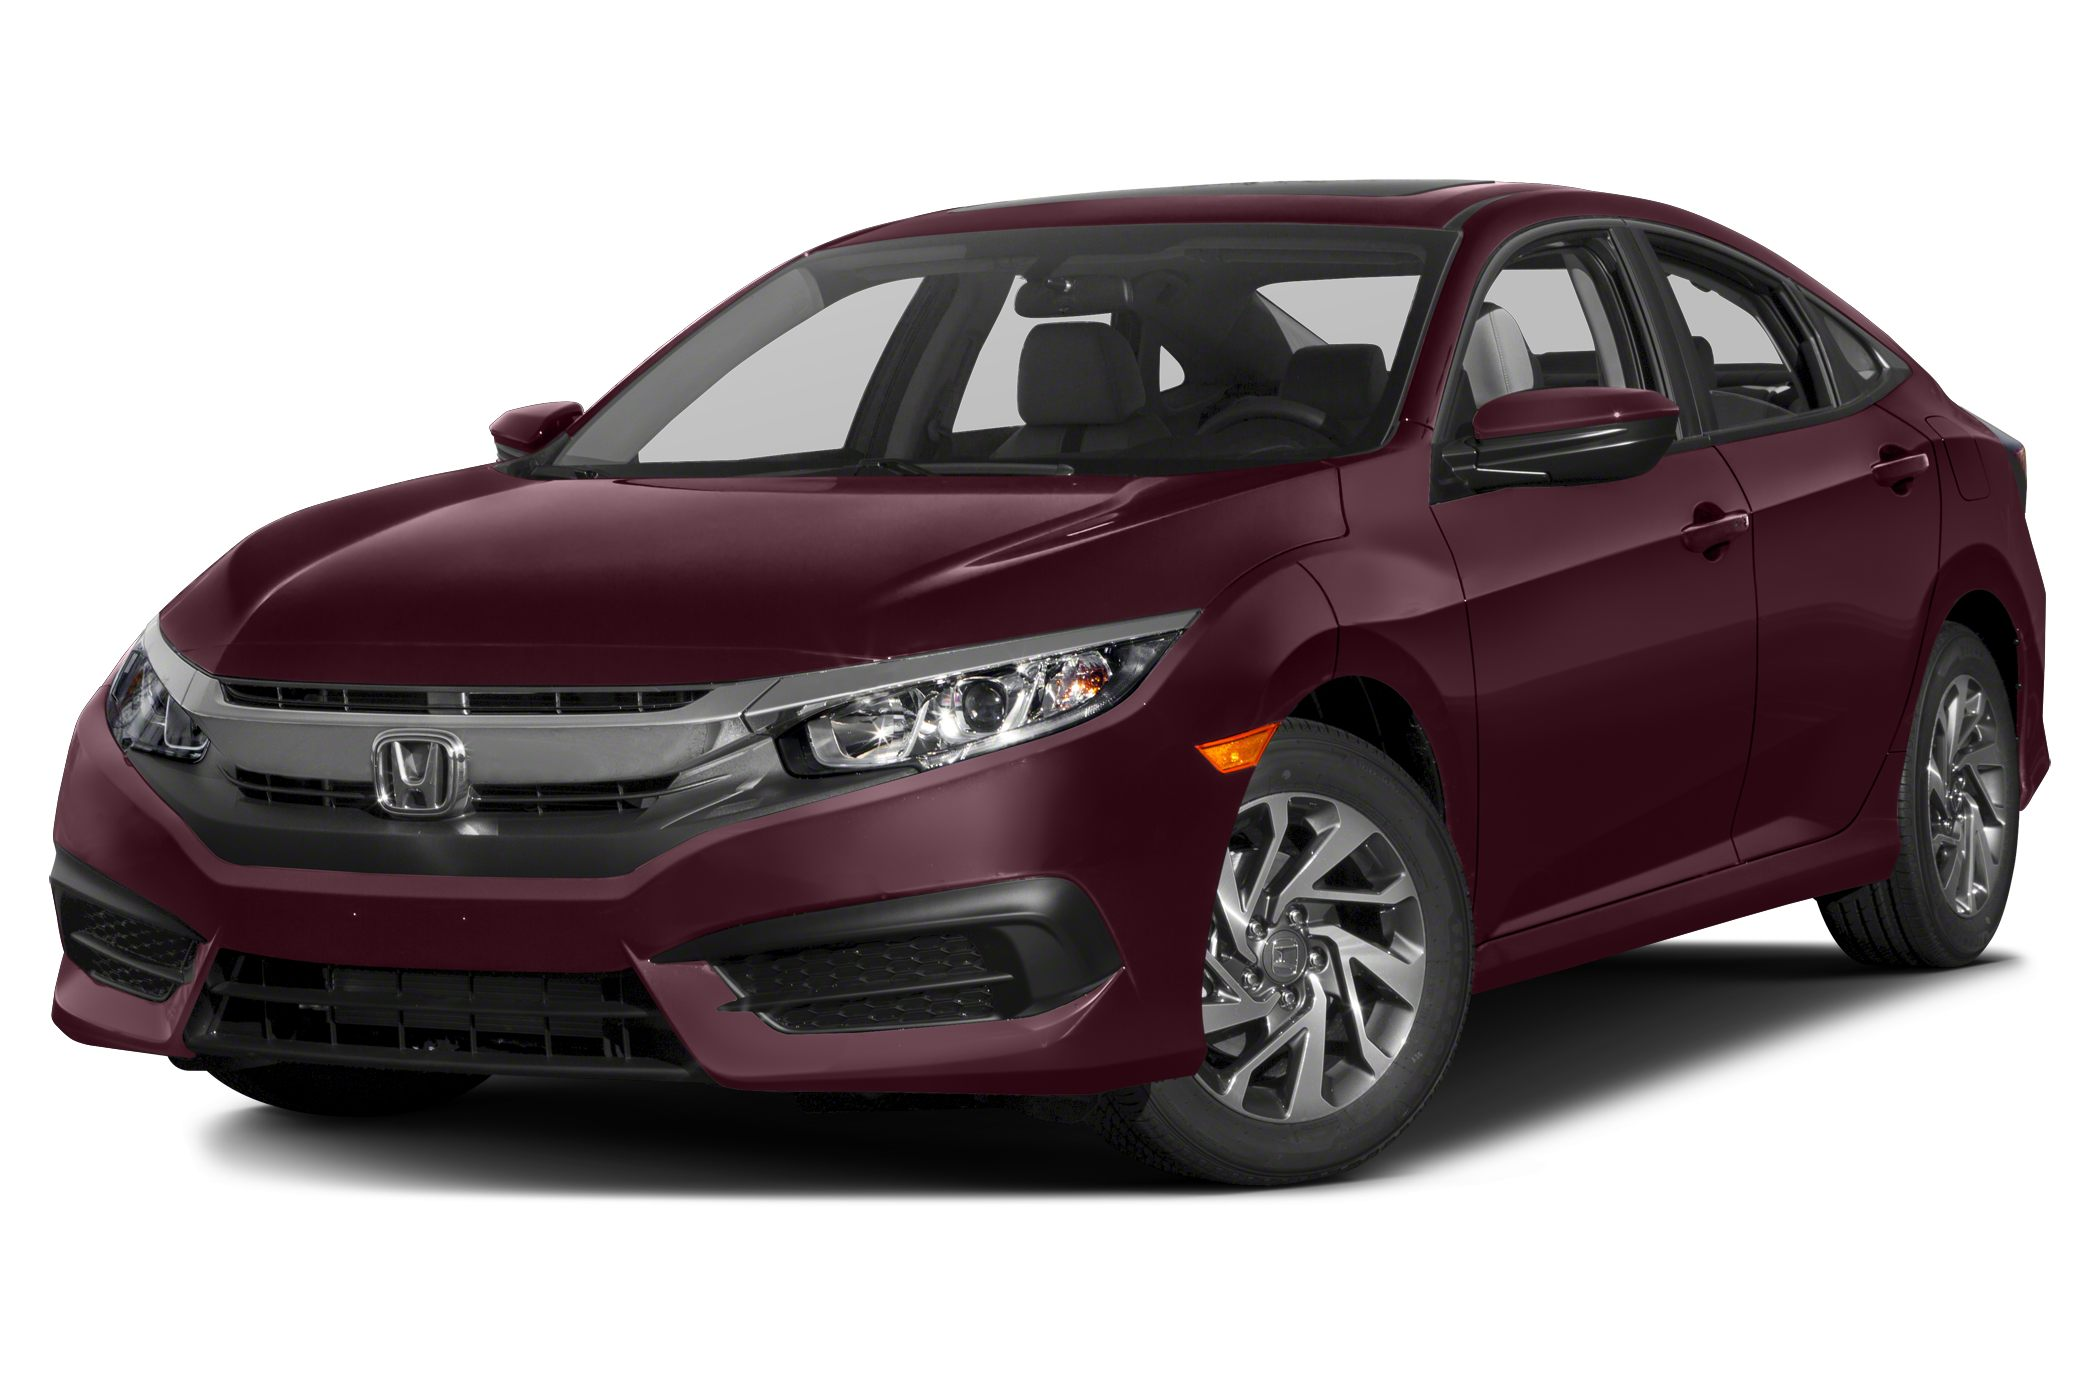 2016 Honda Civic EX Introducing the 2016 Honda Civic This vehicle rocks its class with 4-cylinder